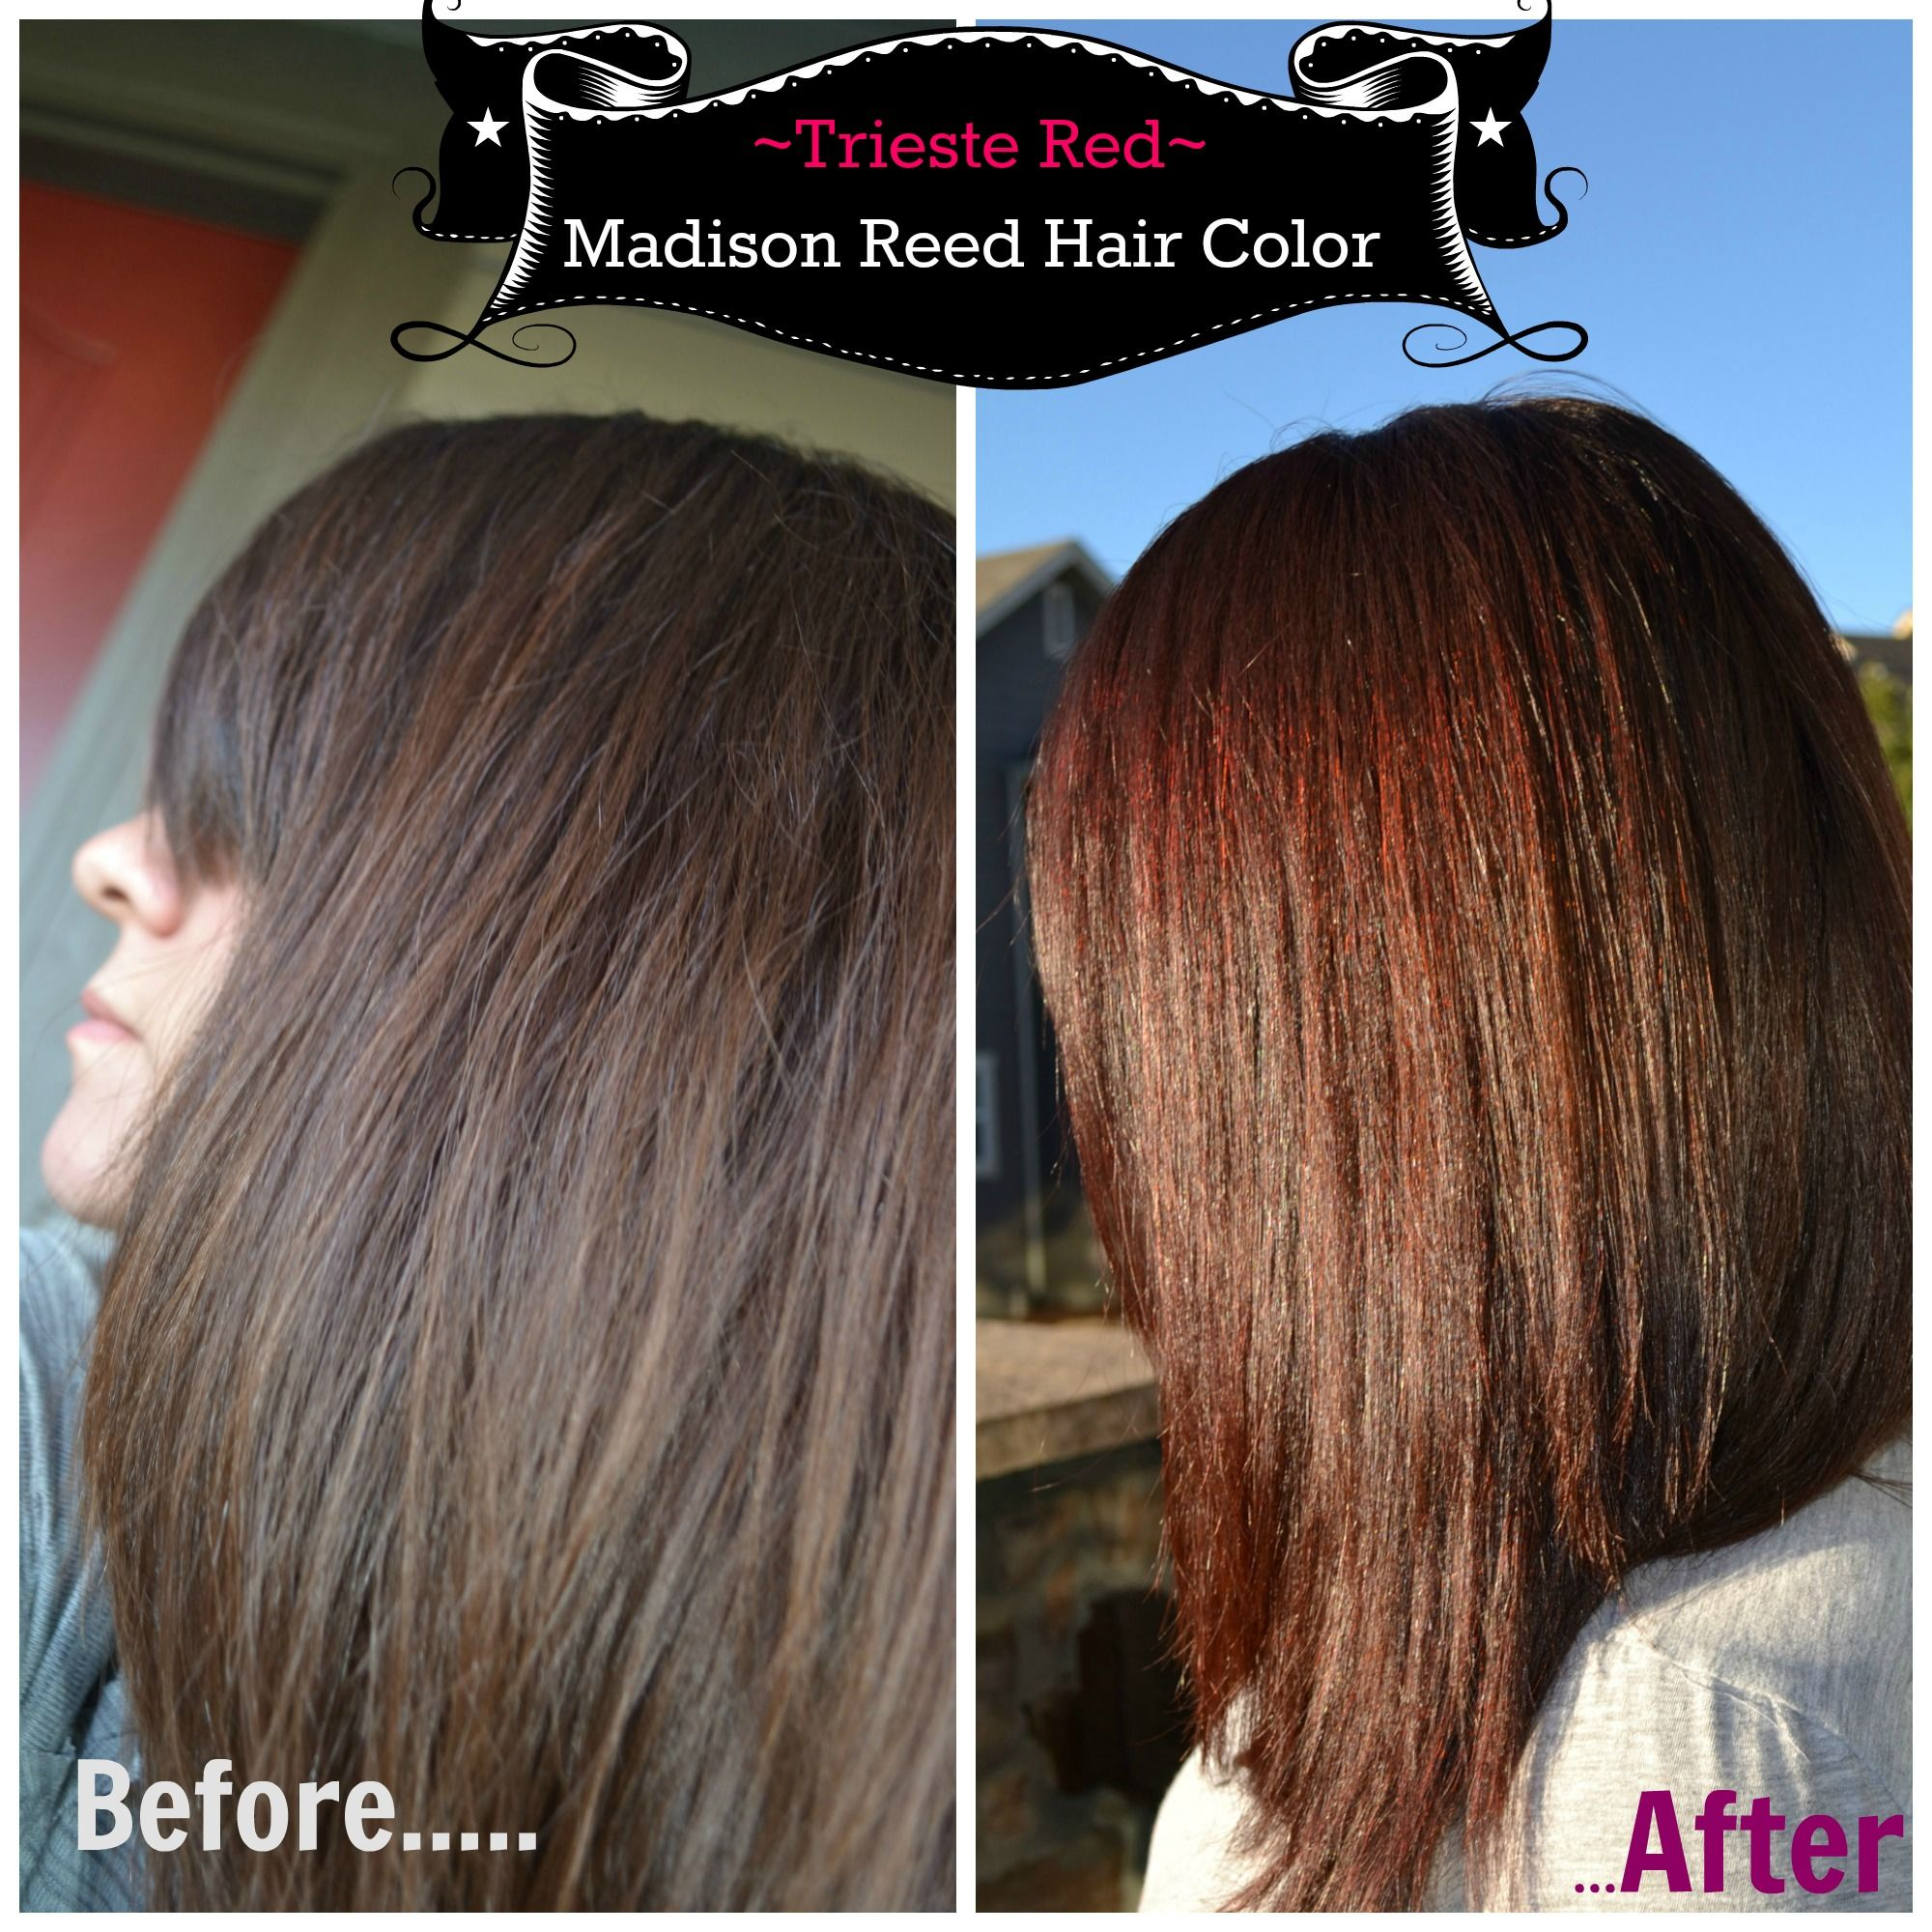 Madison Reed Trieste Red 5nrm Review Organic Deal Diva Madison Reed Hair Color Dyed Red Hair Color Treated Hair Shampoo